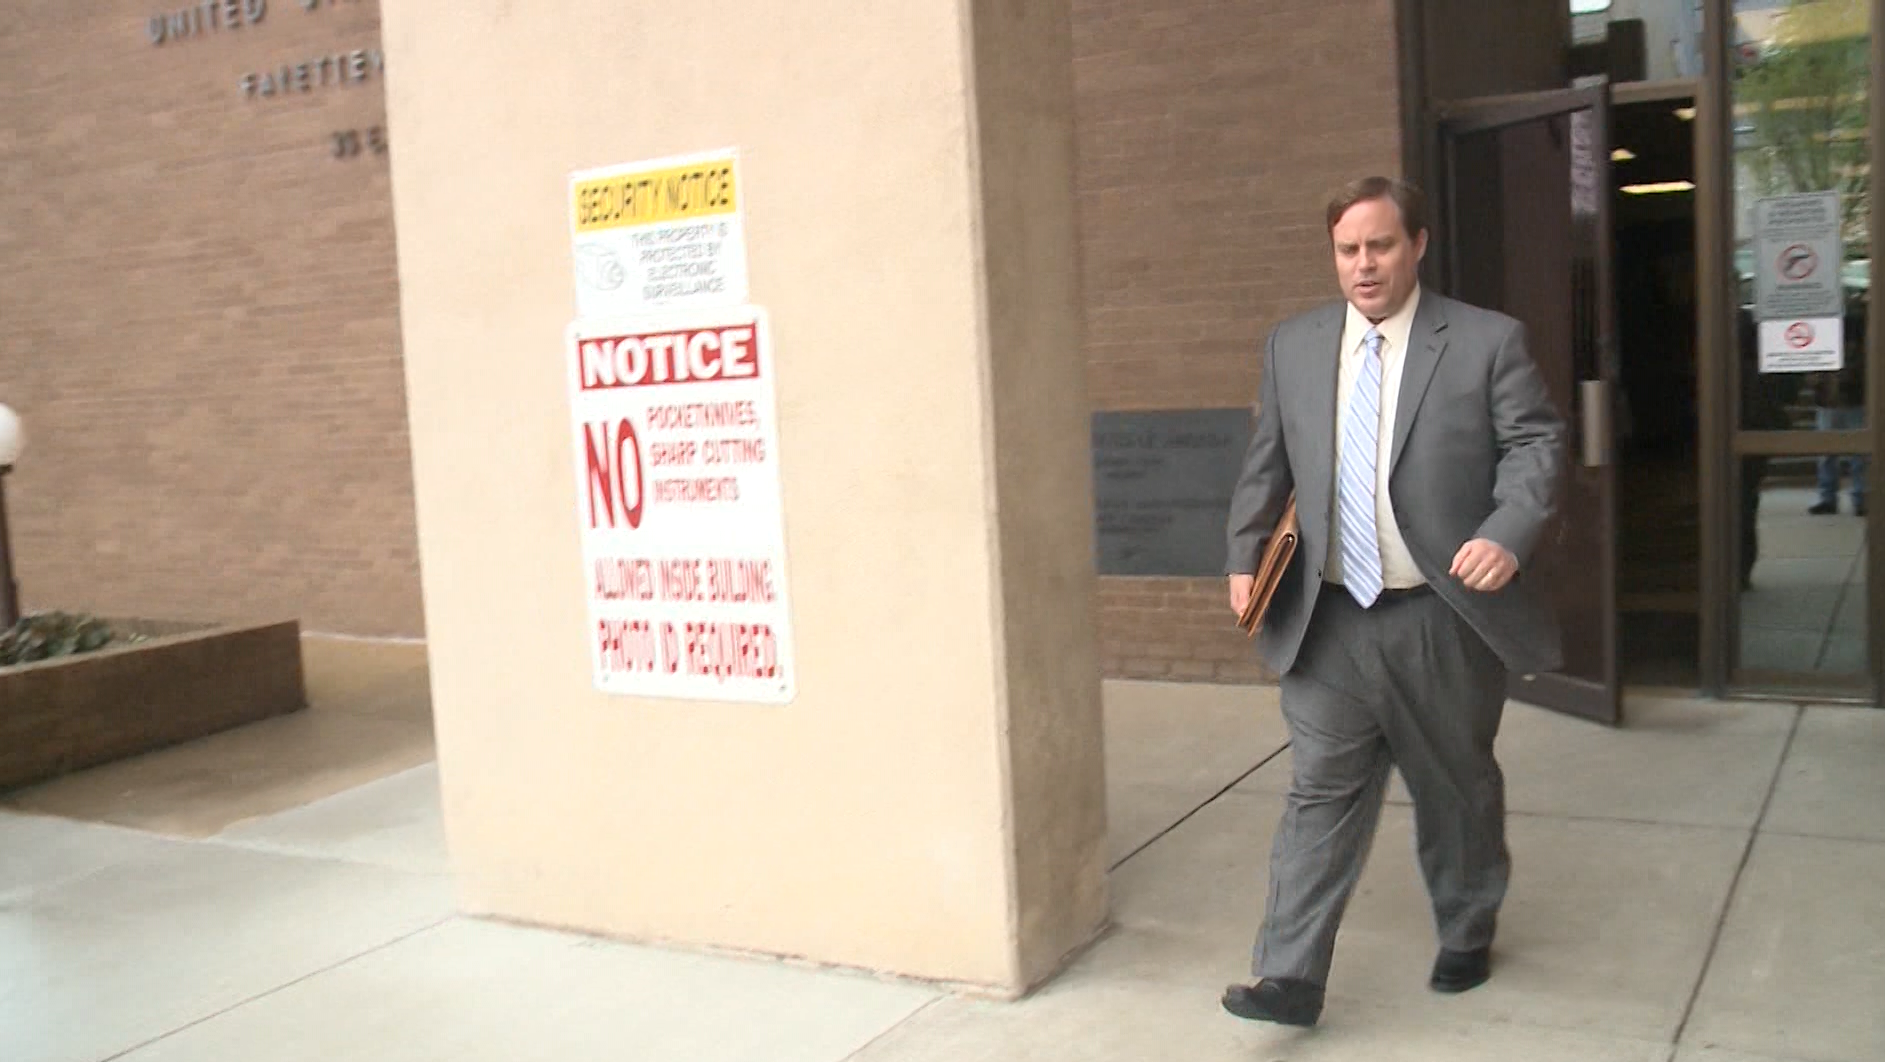 FILE image of Jon Woods exiting court during his trial